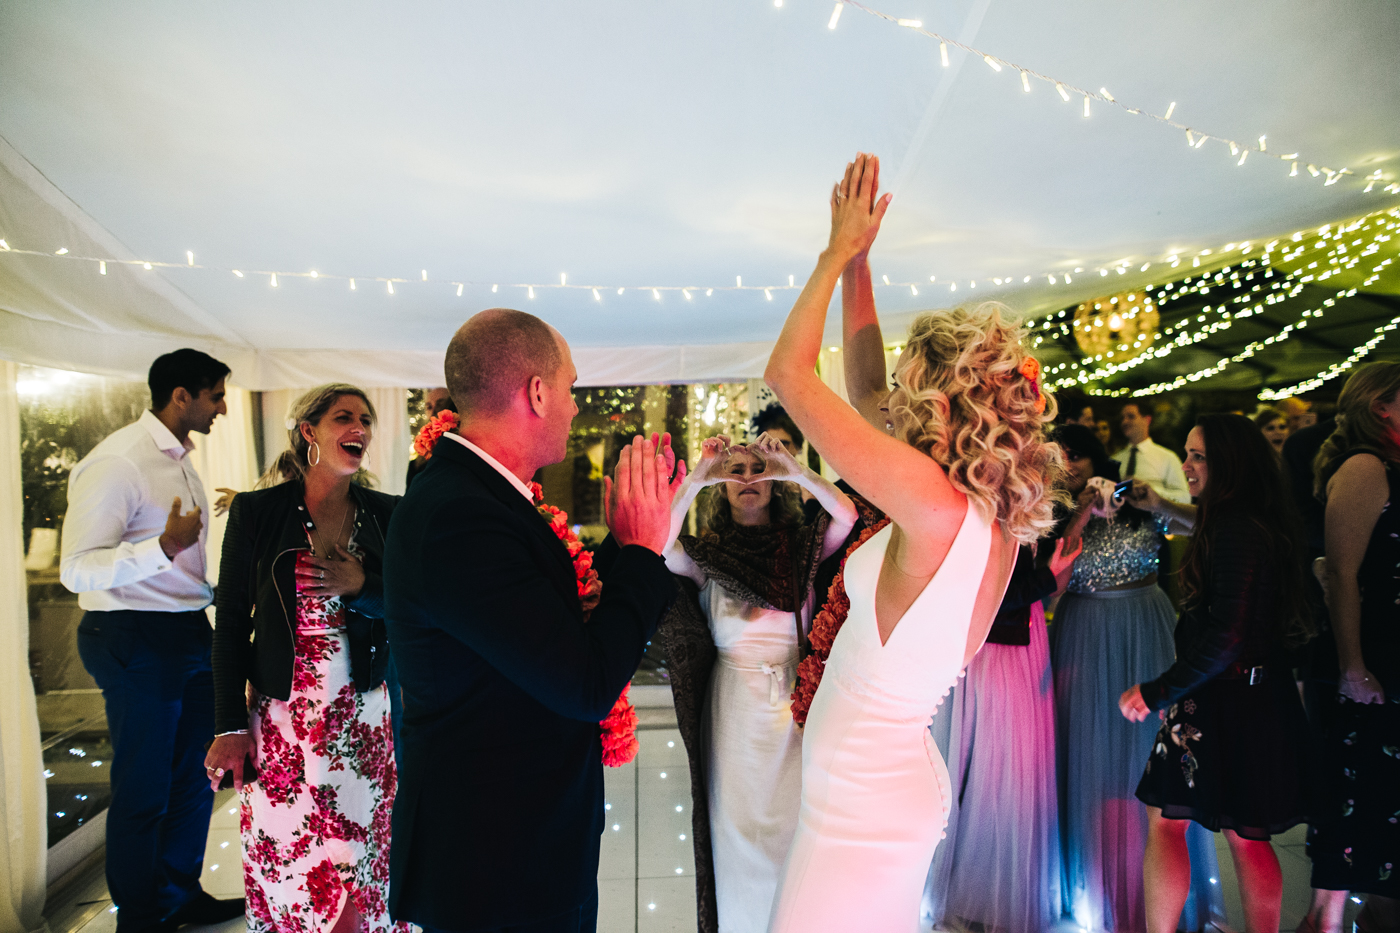 creative-alternative-relaxed-wedding-photography-north-east-teesside-yorshire-photographer-0077.jpg